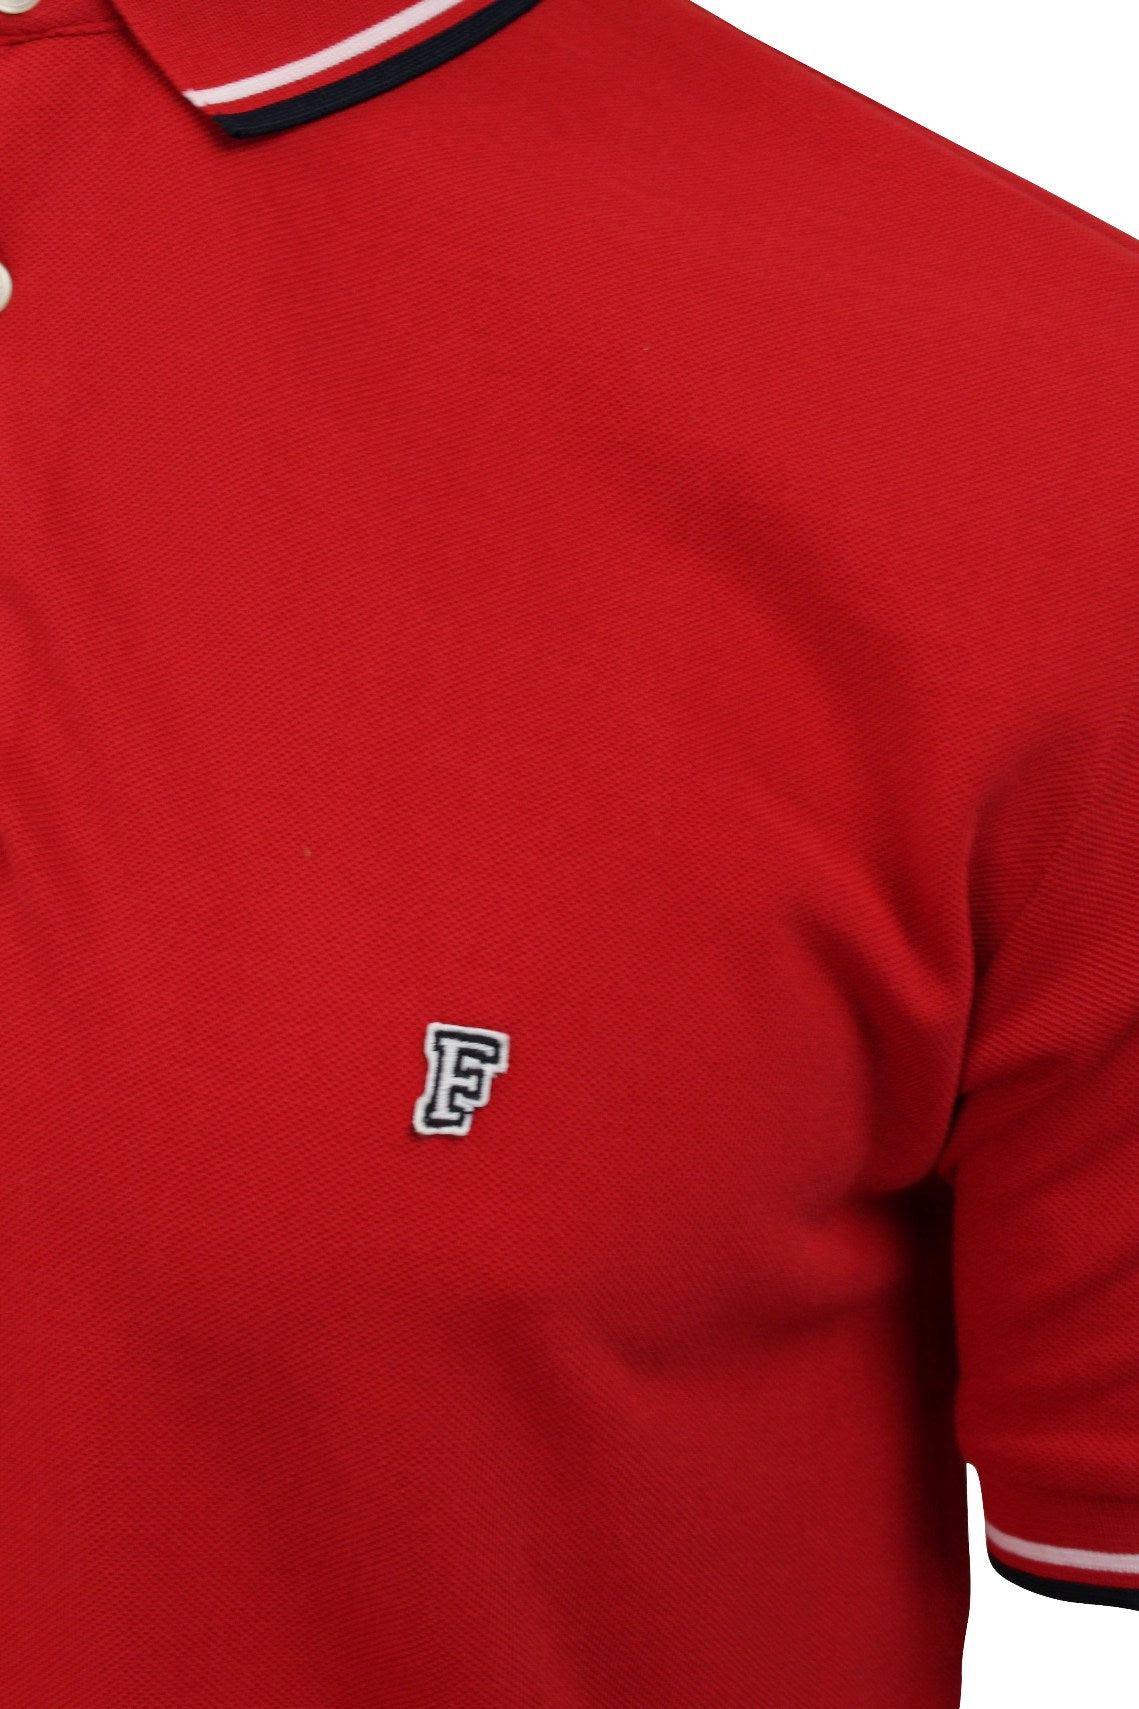 Mens Pique Polo T-Shirt by FCUK/French Connection 'F' Logo Twin Tipped_02_56Szb_Poster Red